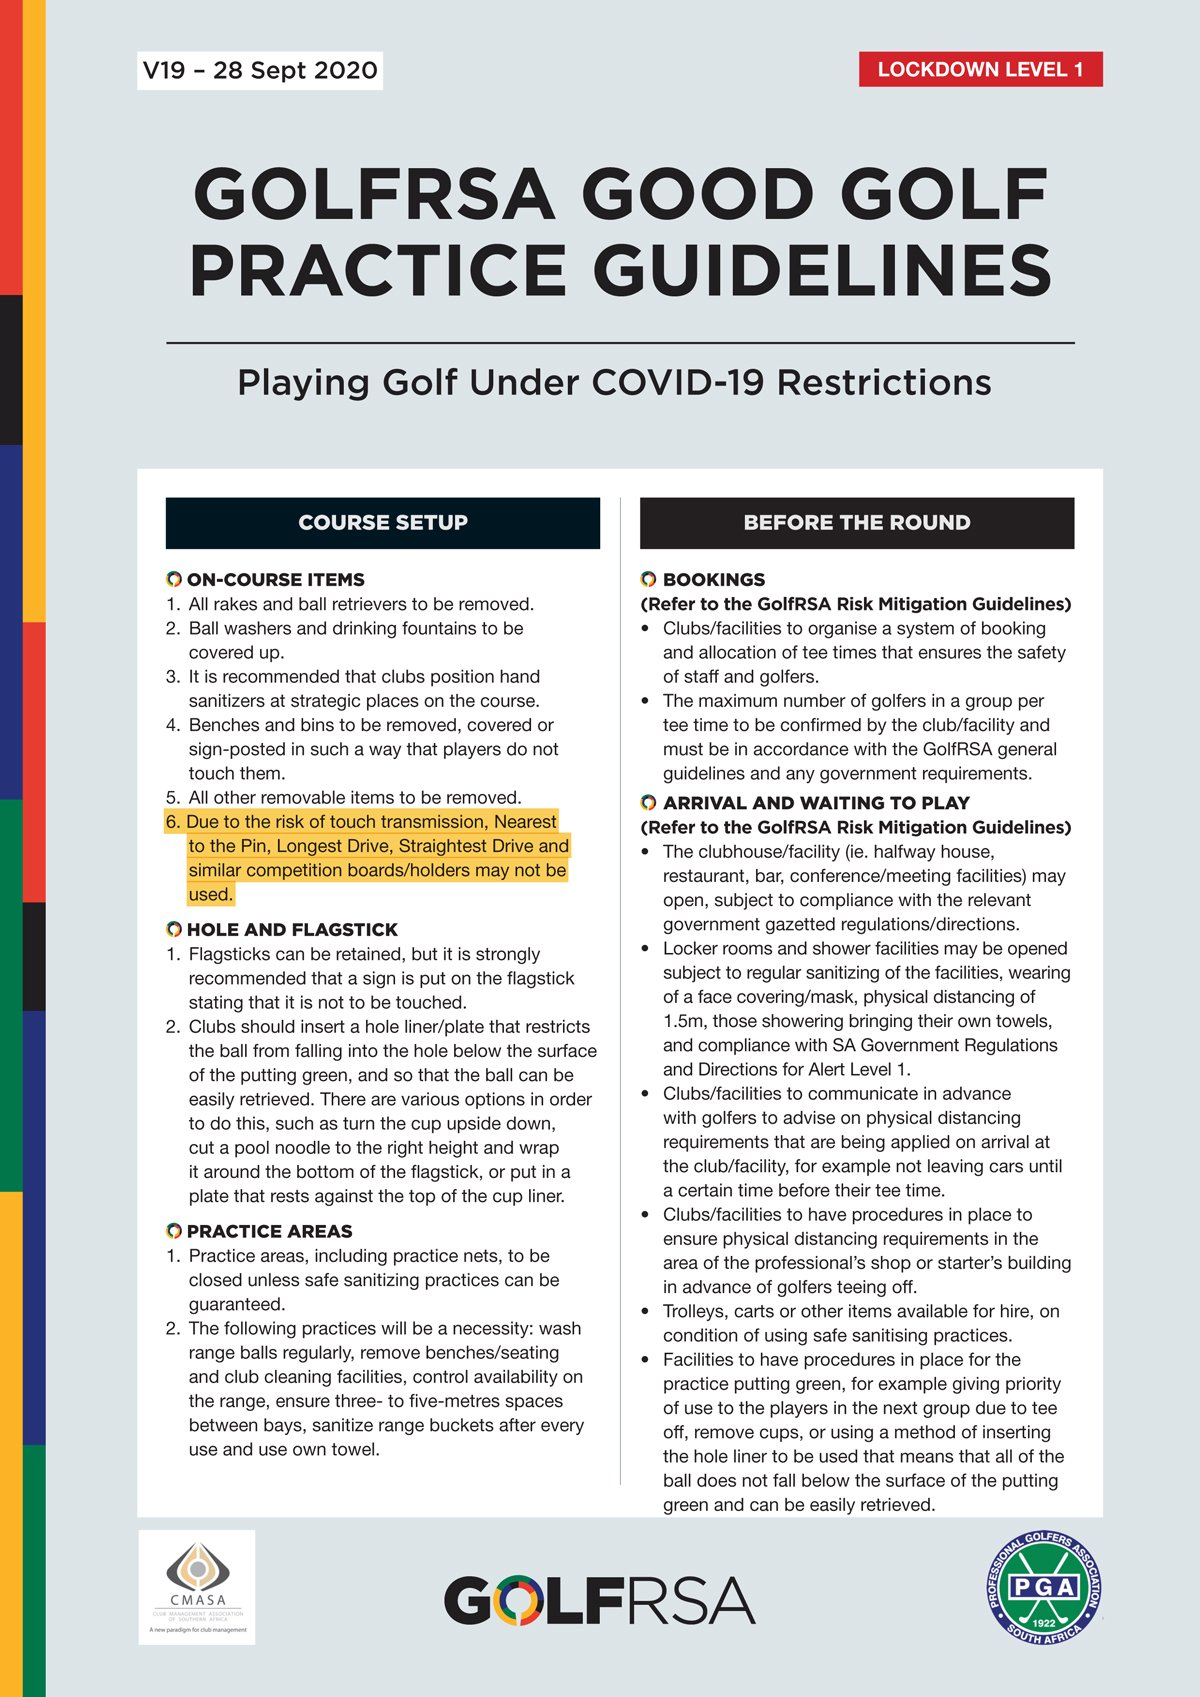 GolfRSA-Good-Practice-Guidelines-V19-1